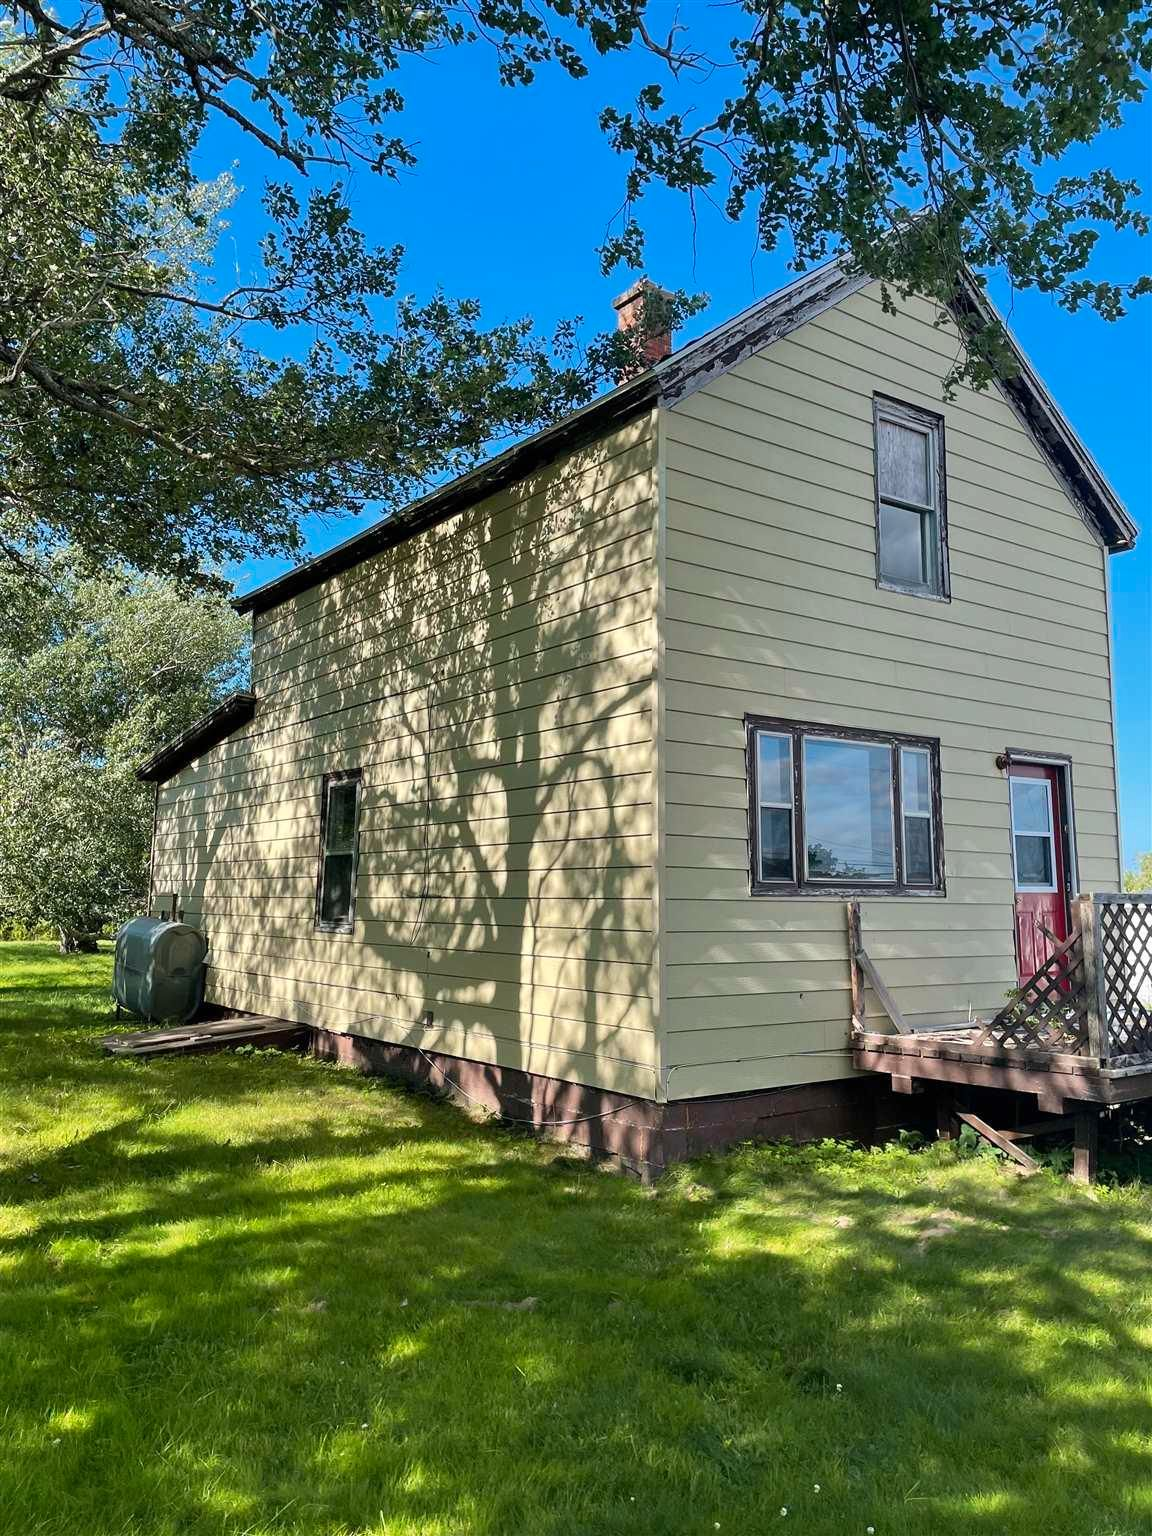 Main Photo: 112 holland Street in Reserve Mines: 203-Glace Bay Residential for sale (Cape Breton)  : MLS®# 202120364